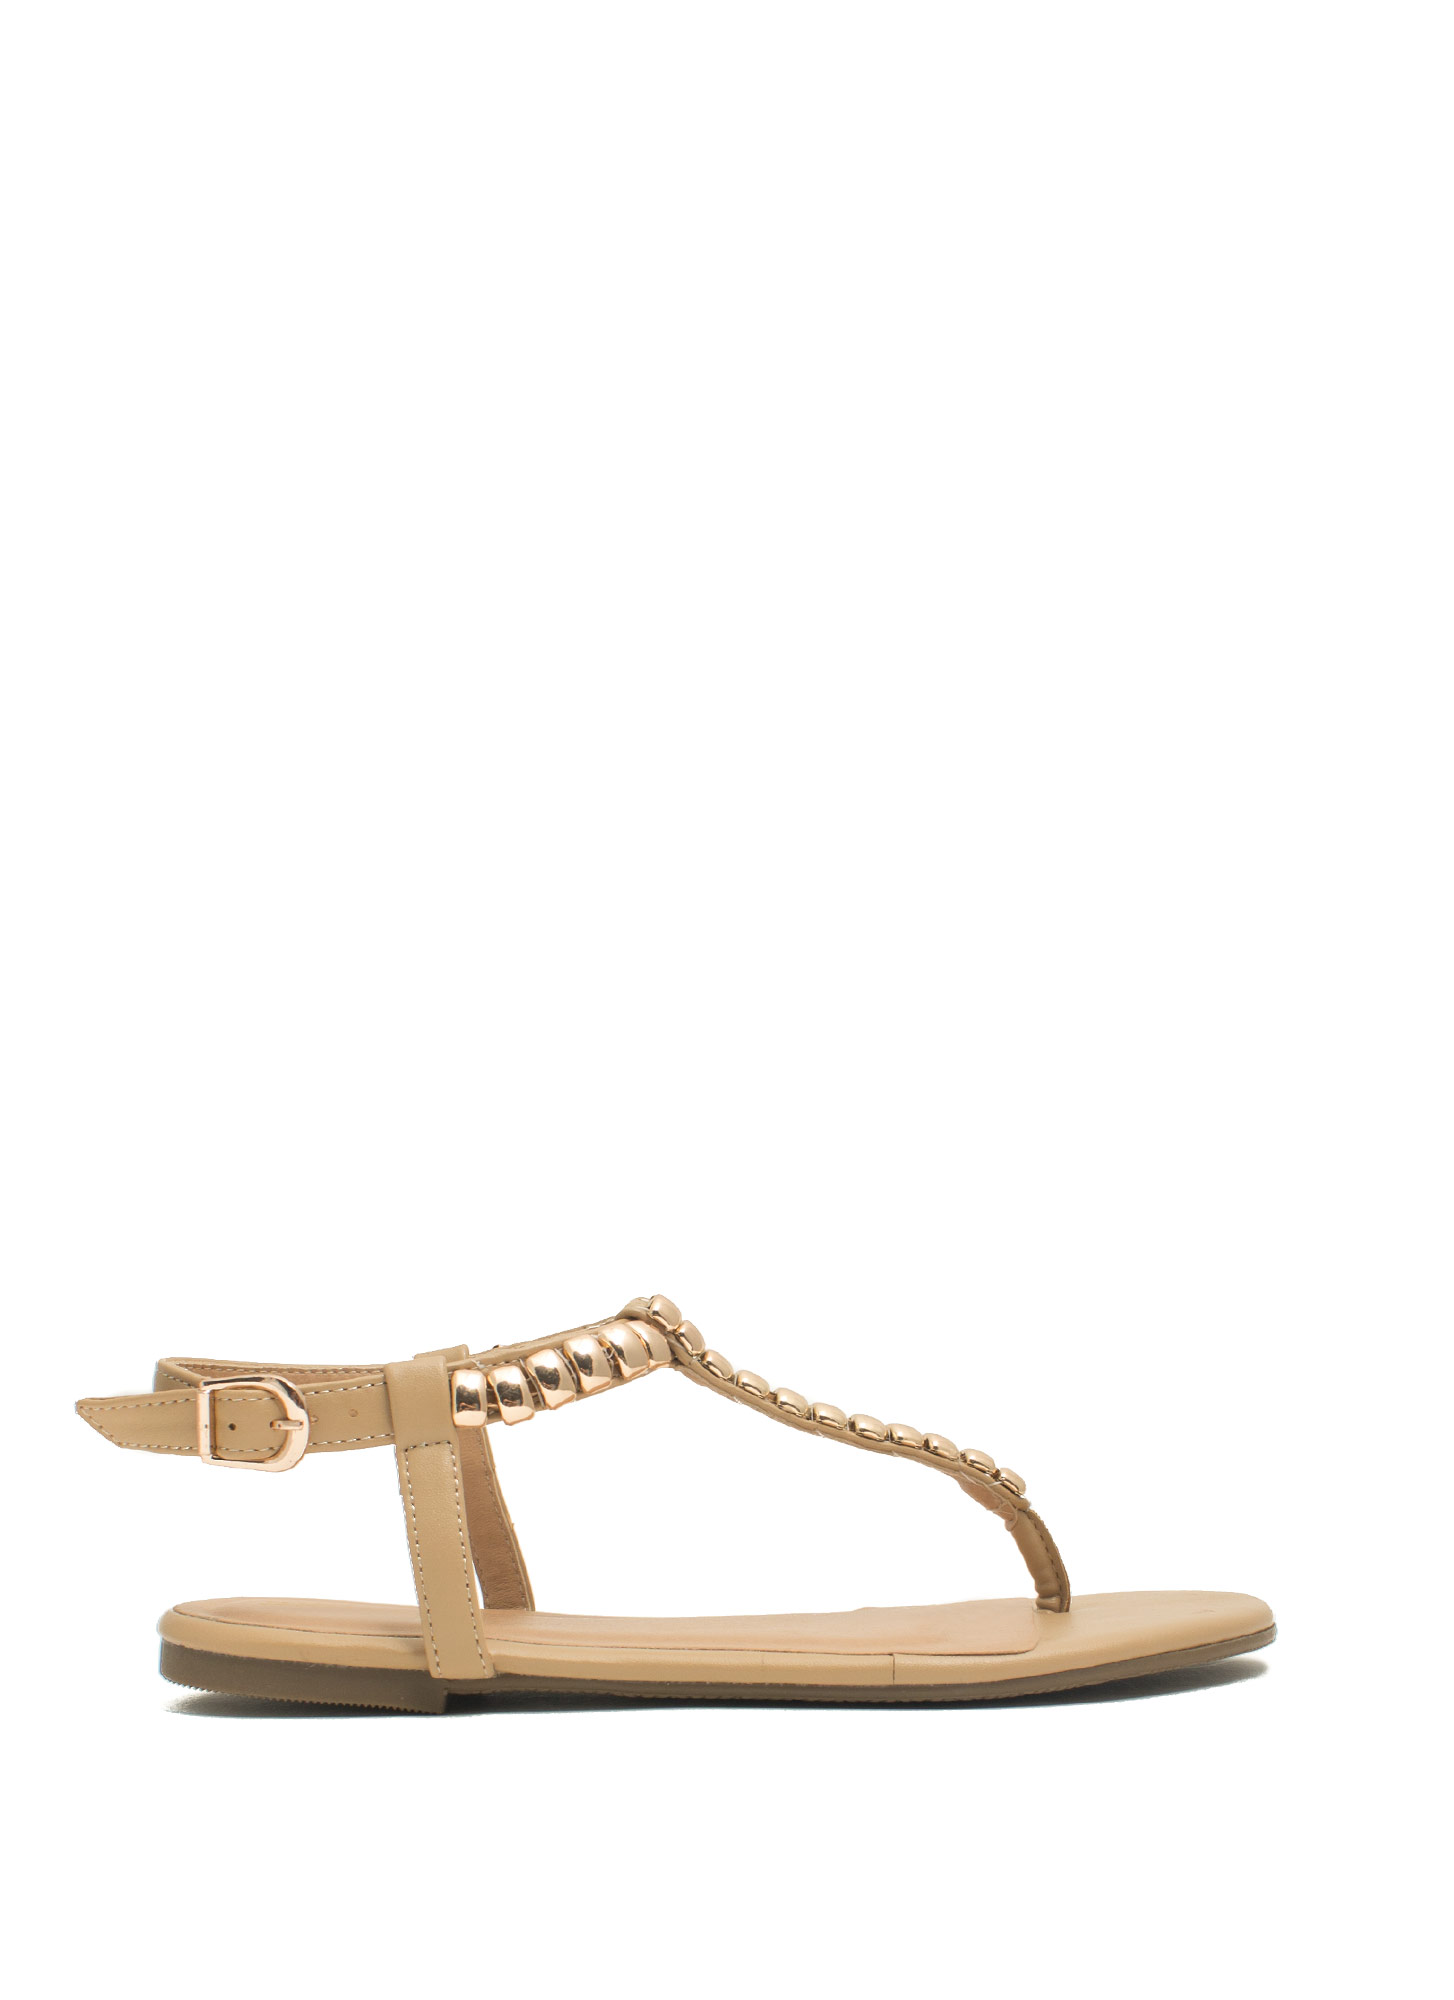 Tile Me Something Good Thong Sandals SAND